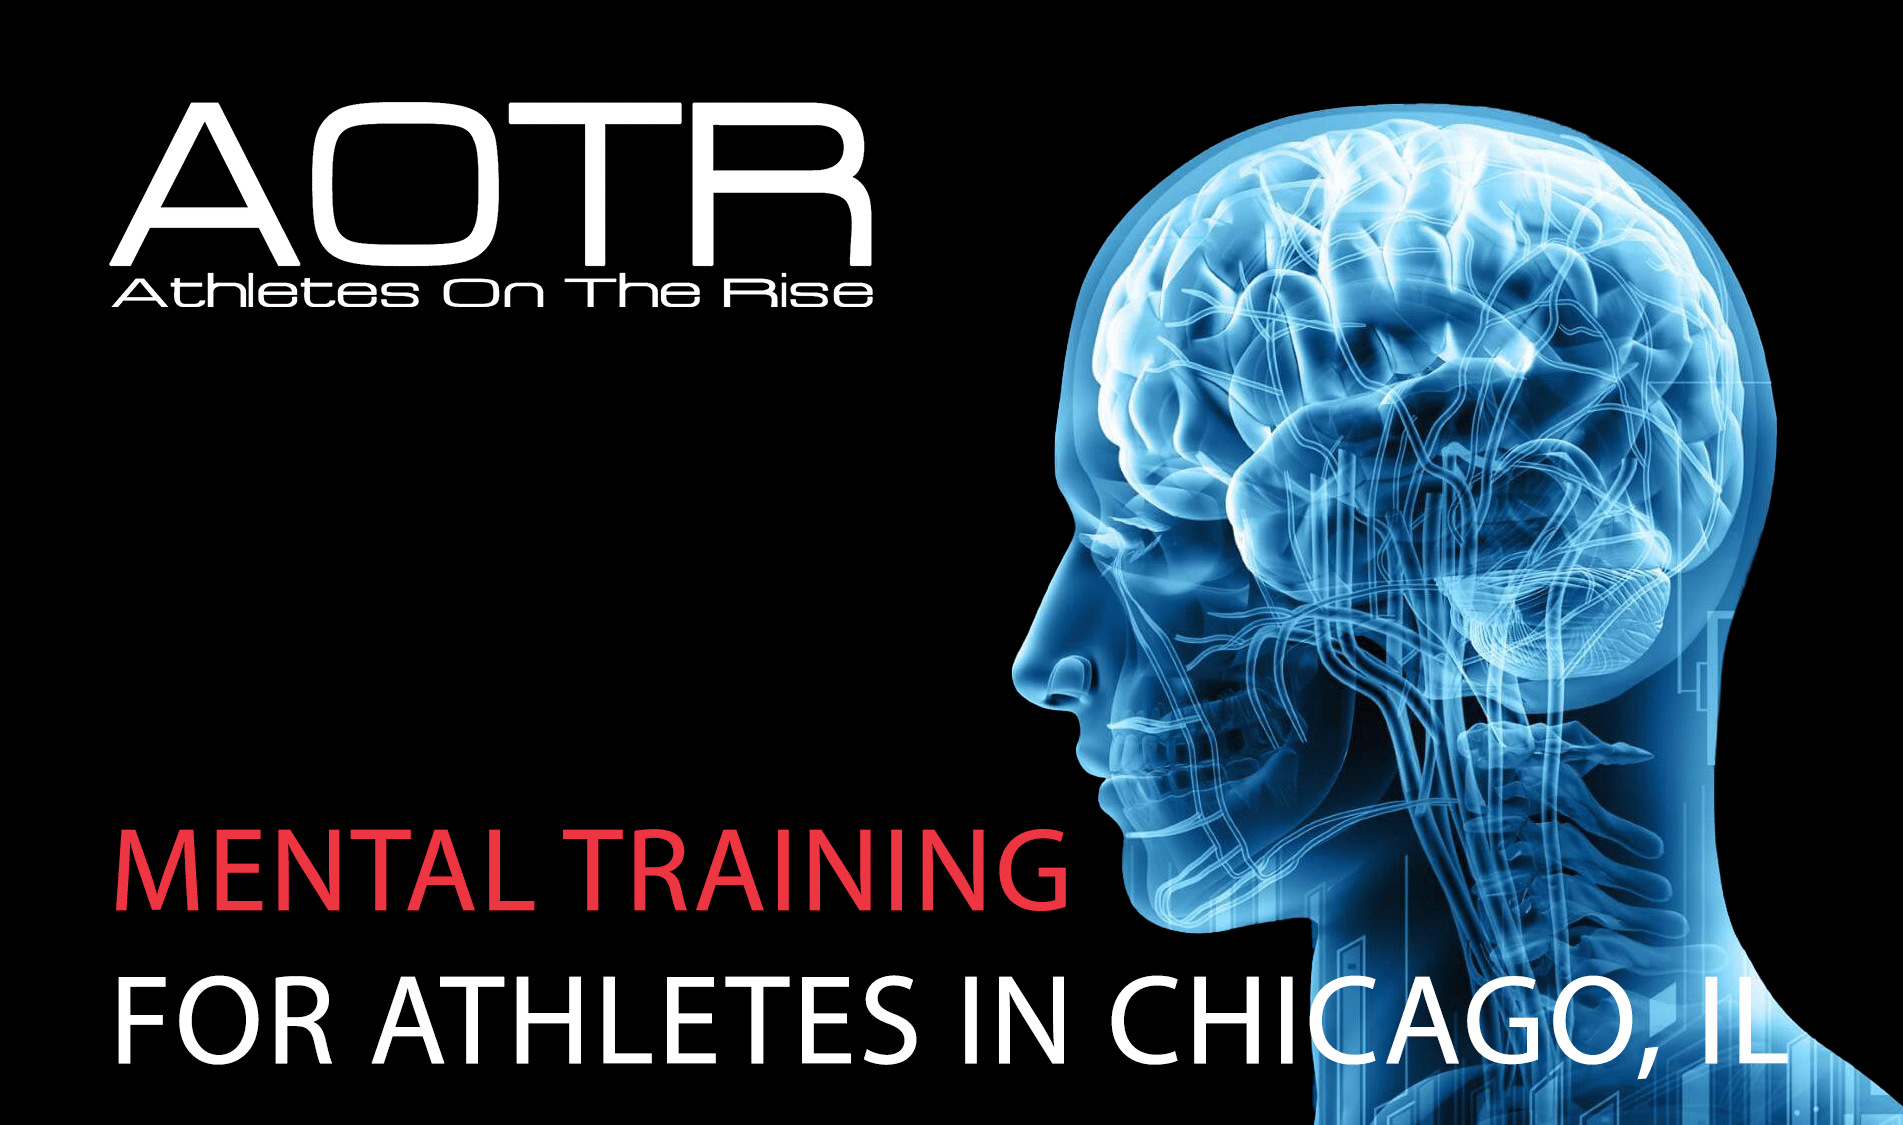 mental training for athletes in chicago, athletes on the rise, mental training